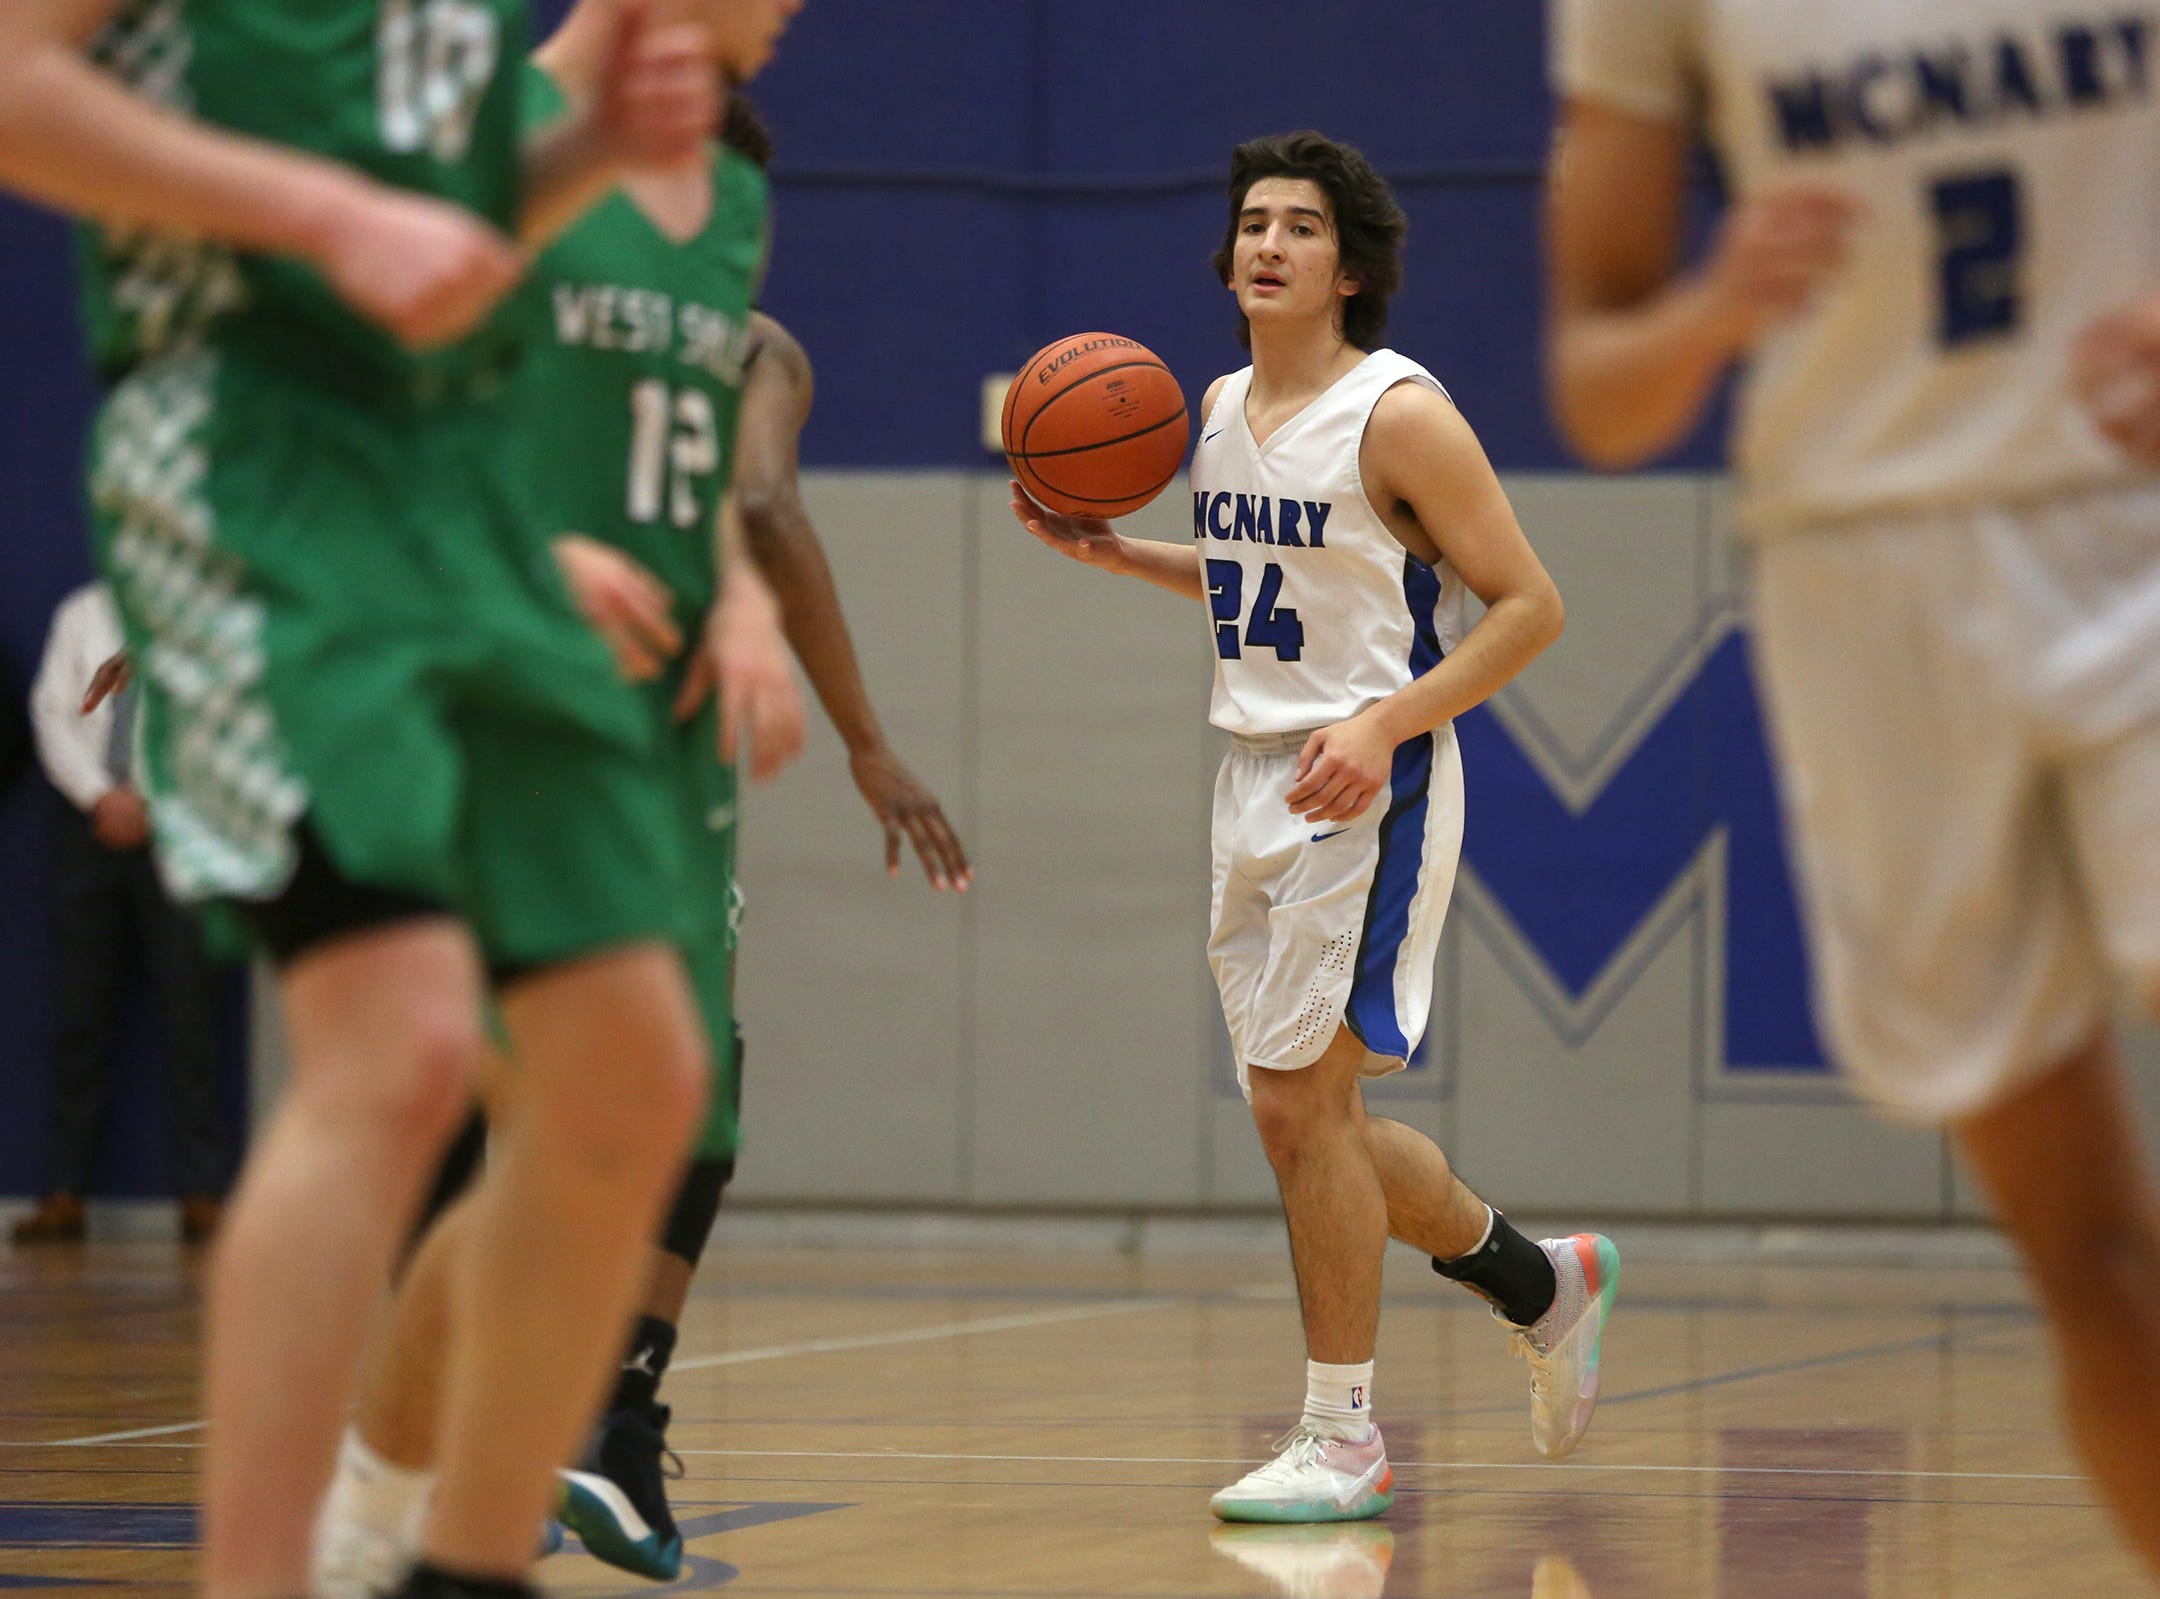 McNary's Alfredo Villareal (24) during the McNary boys basketball vs. West Salem game at McNary High School in Keizer on Wednesday, Feb. 6, 2019.